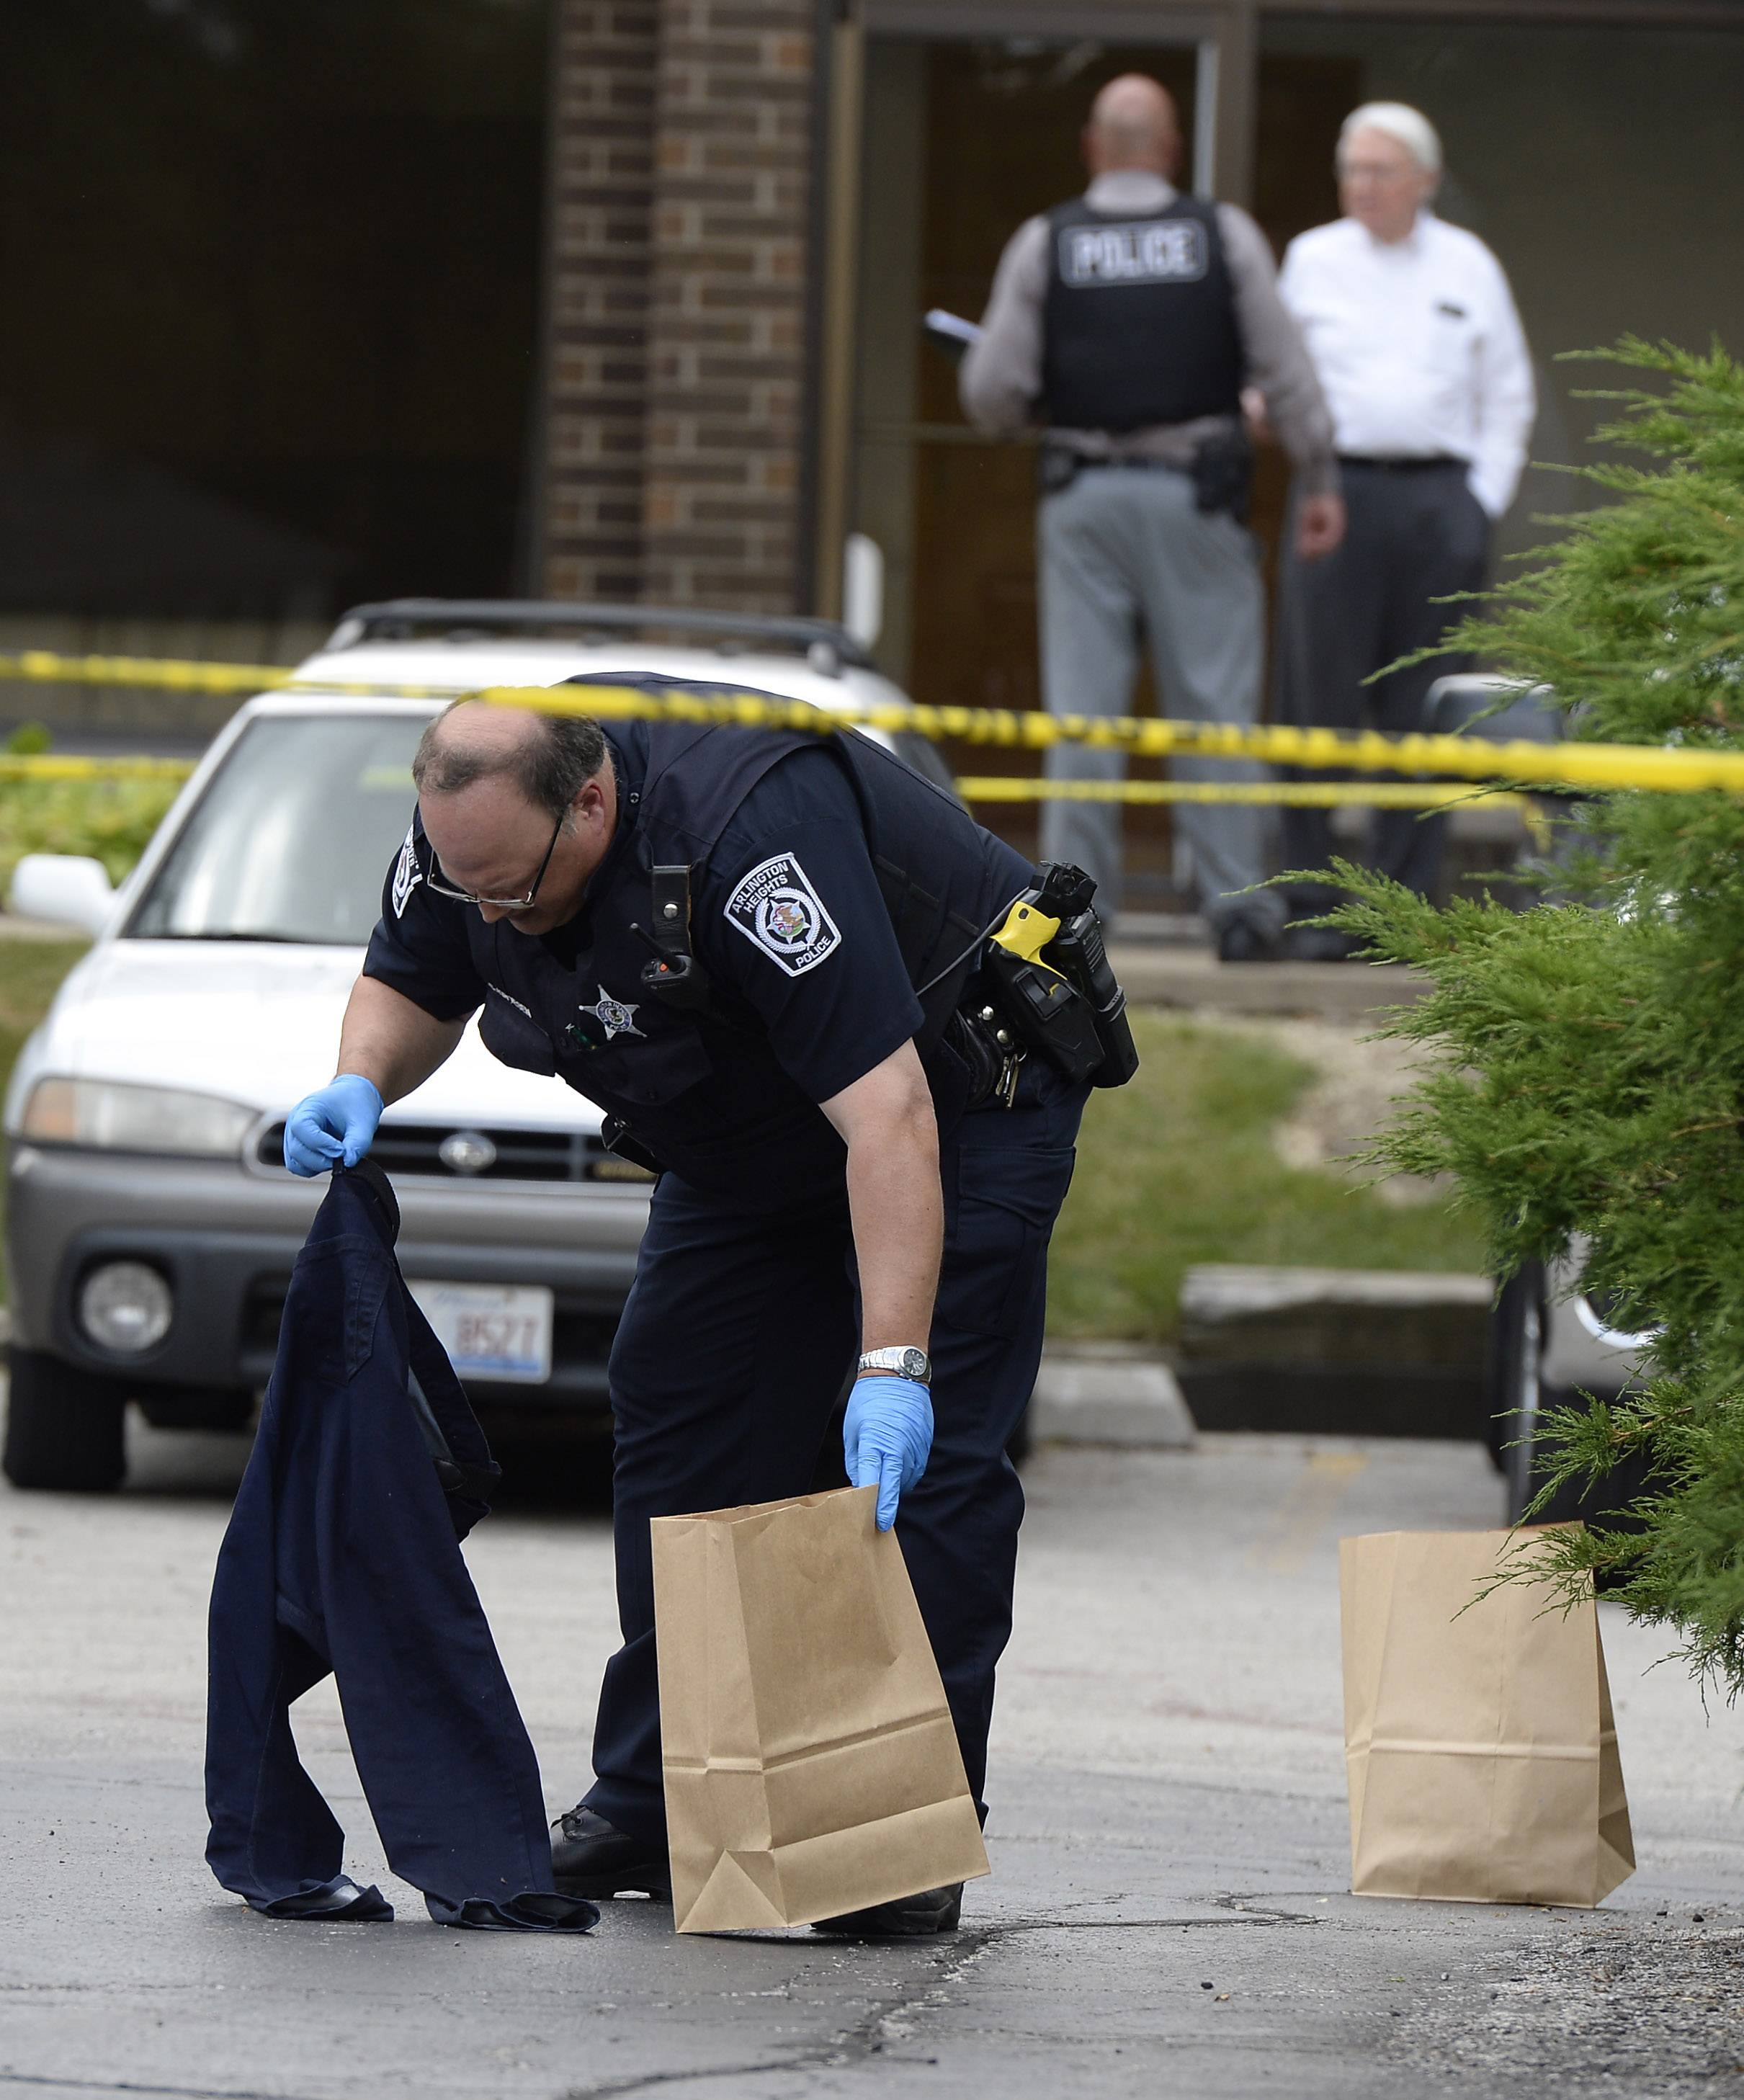 Arlington Heights police gather evidence, including bloody clothes and a chain saw, after a domestic dispute that turned violent in a parking lot Monday.